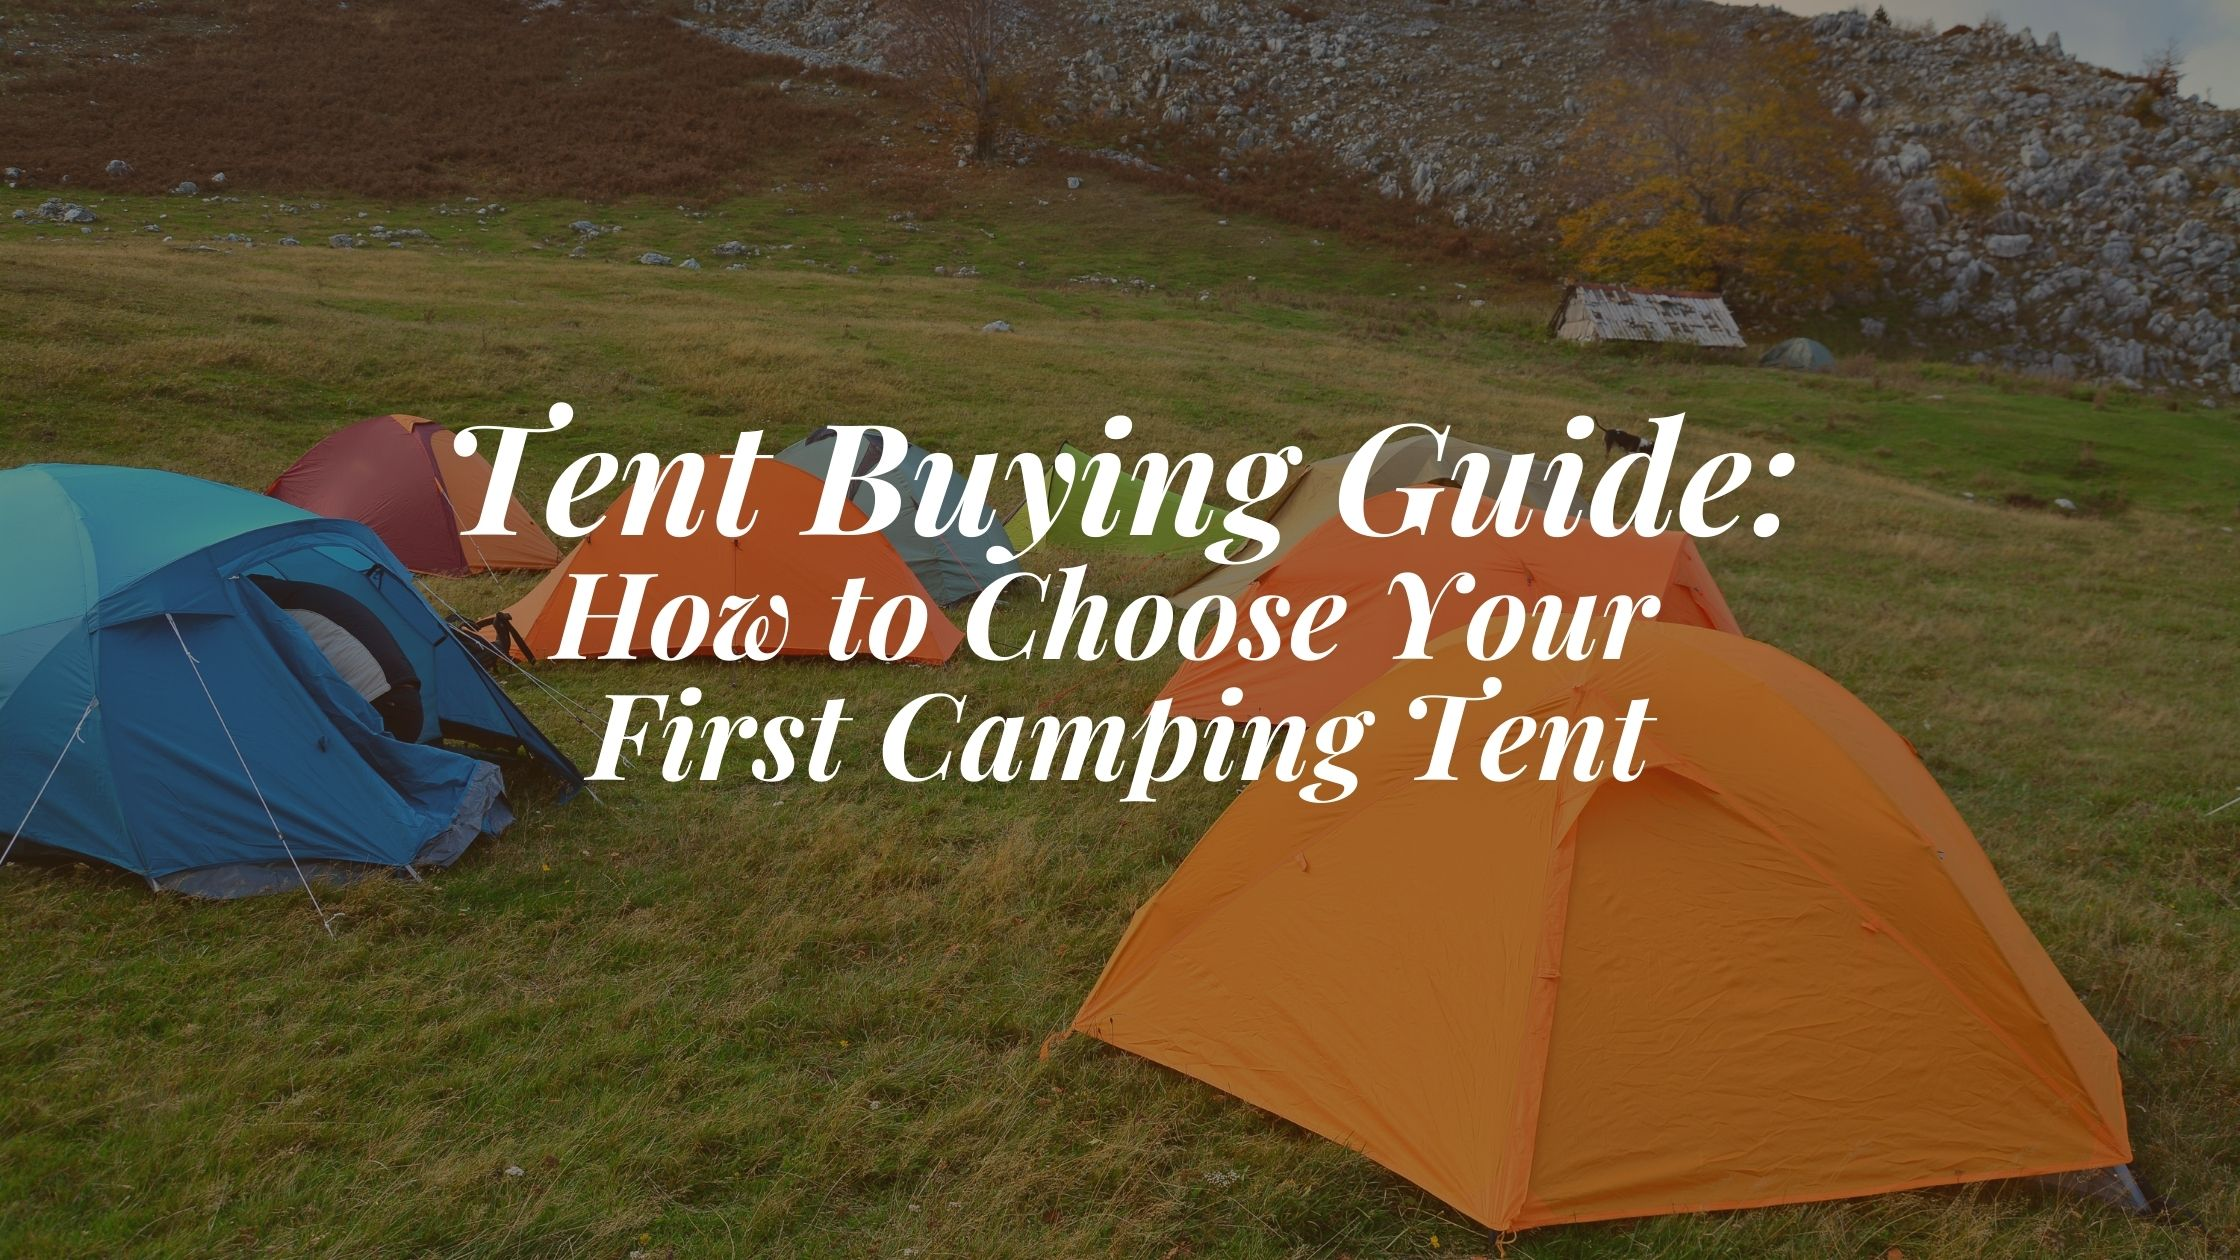 Tent Buying Guide: How to Choose Your First Camping Tent